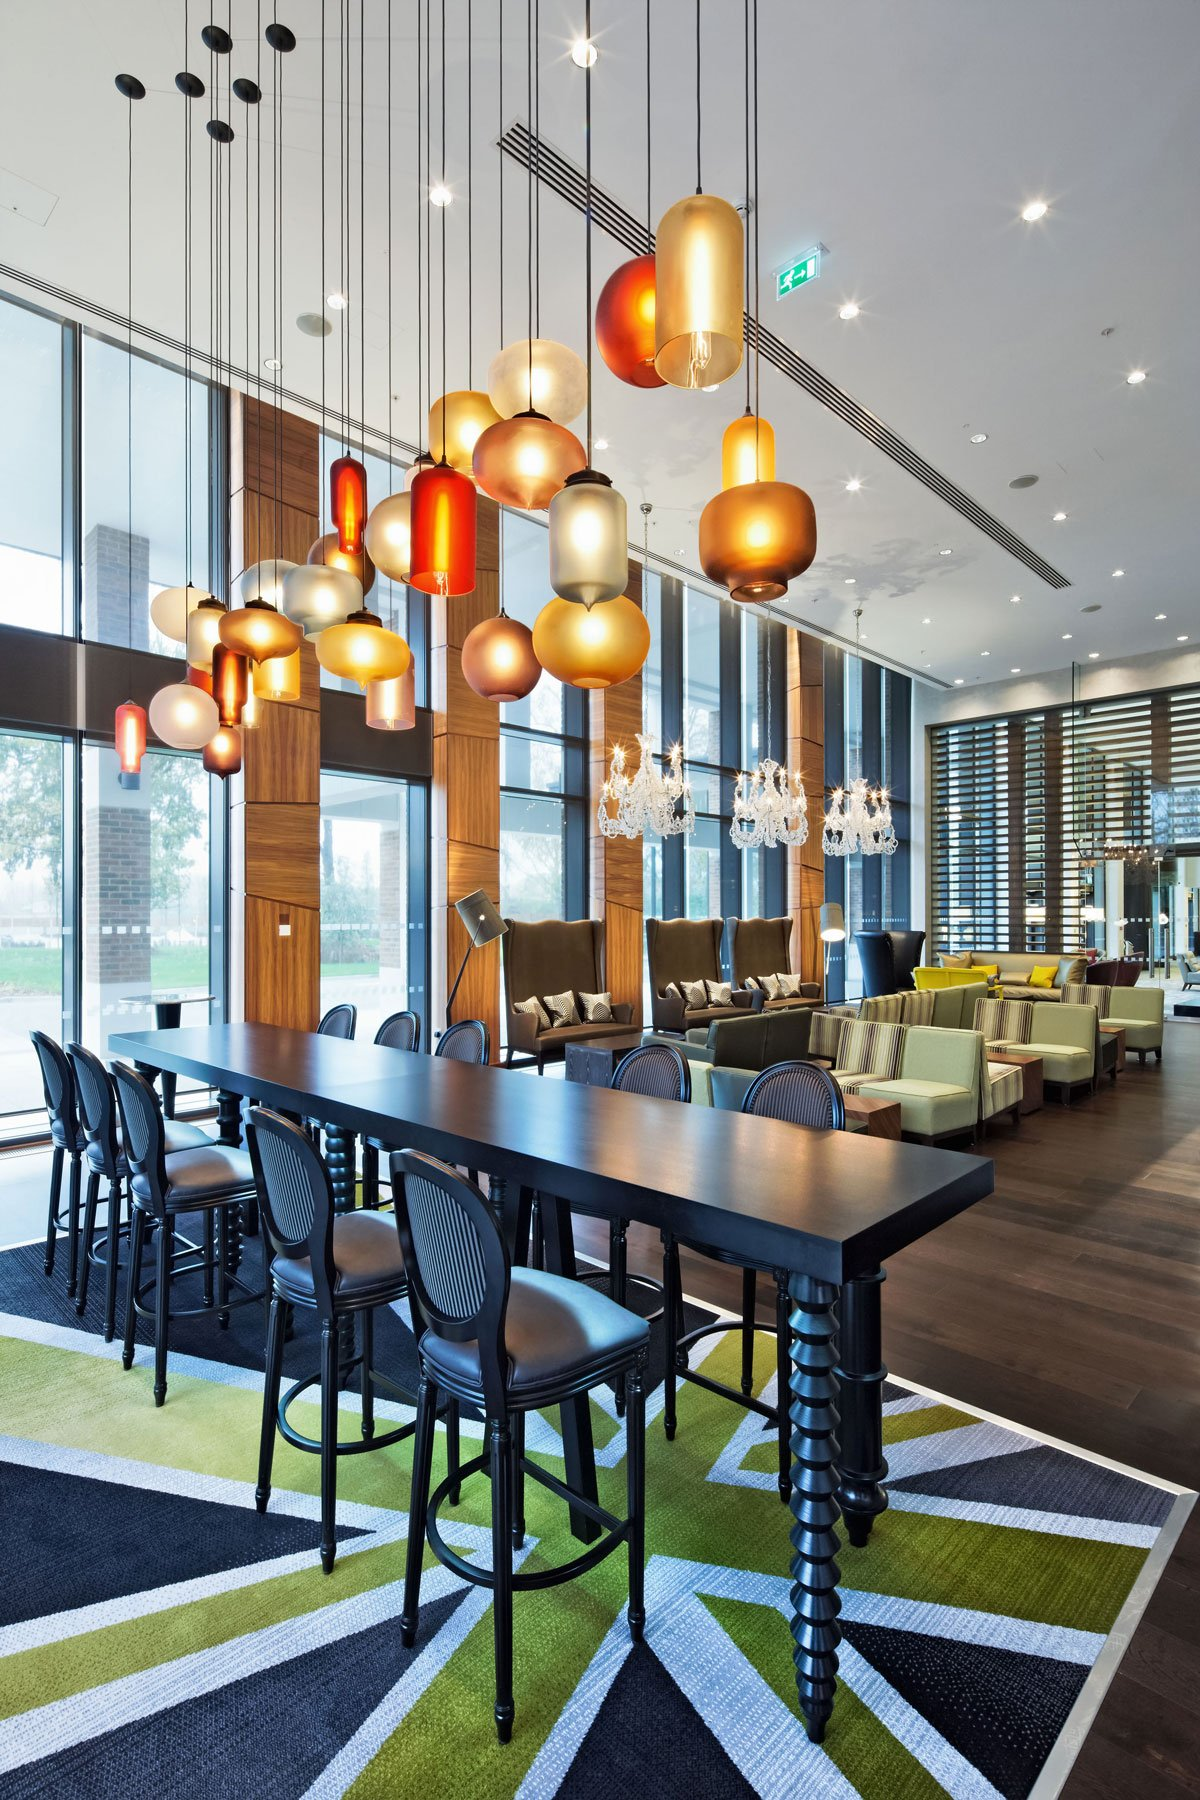 Dining Room Pendant Lighting niche modern pendant lights at the t5 hilton at heathrow in london